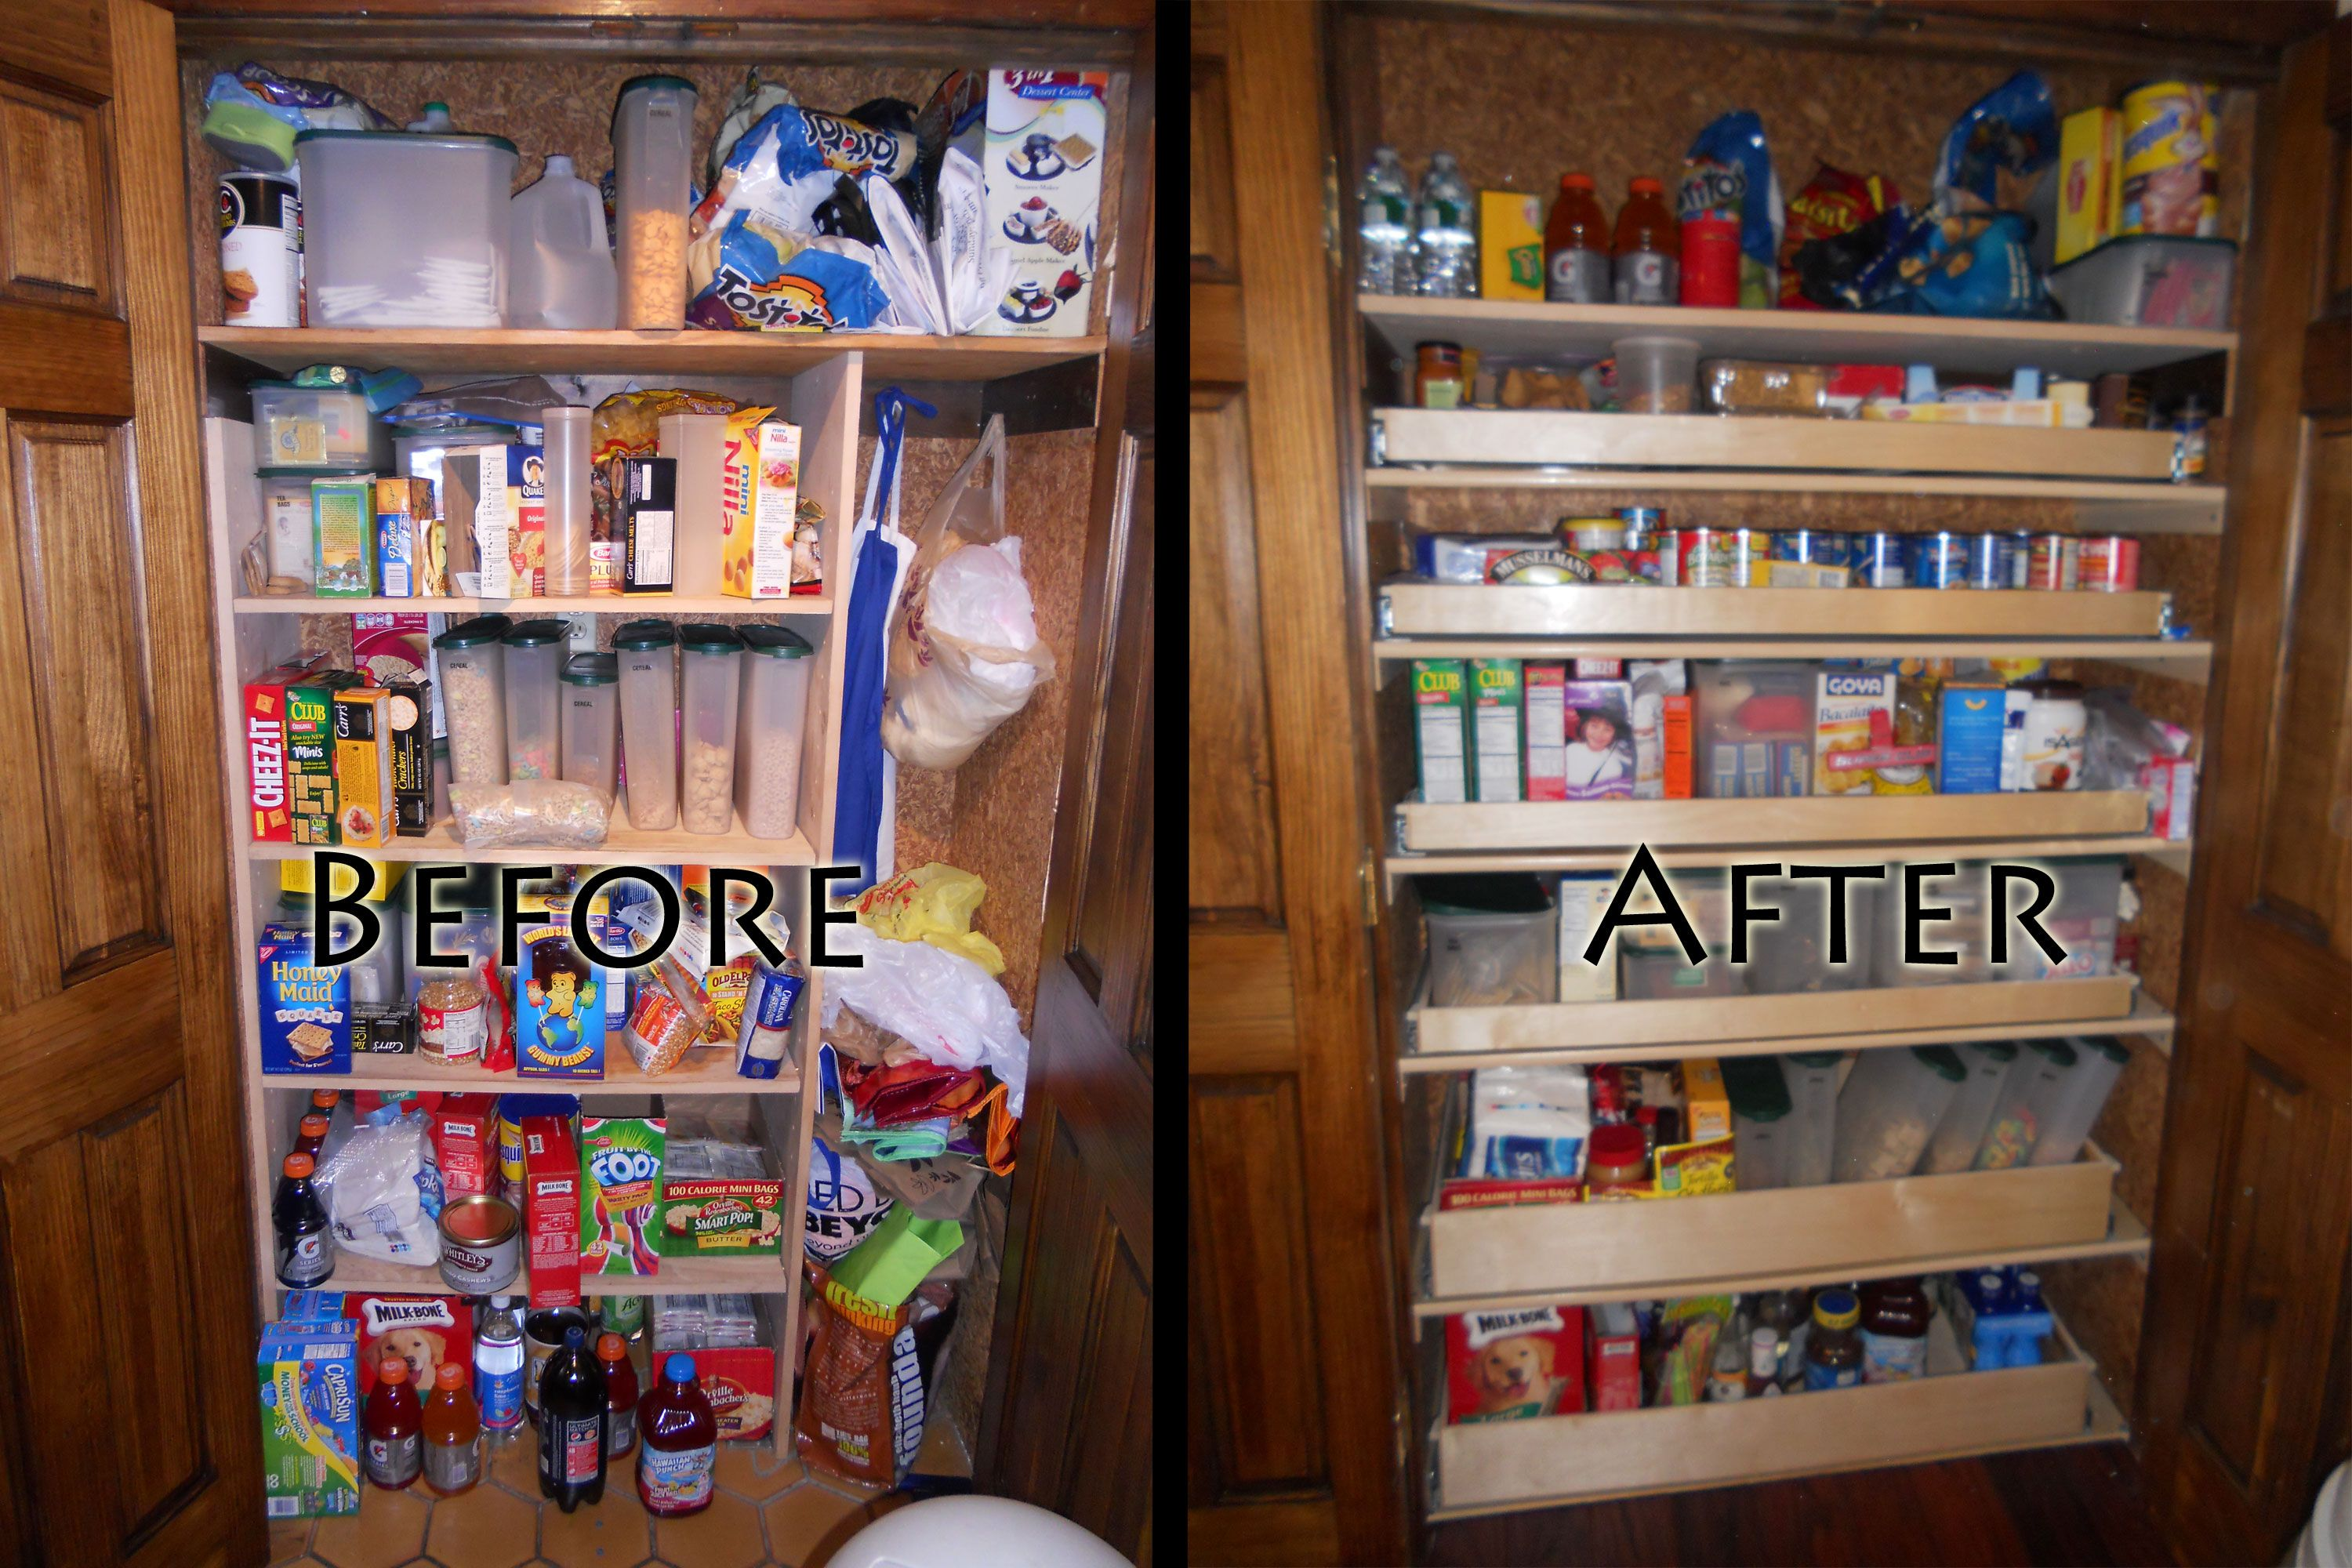 Pantry Shelves Looking A Little Anemic? Not After We Get